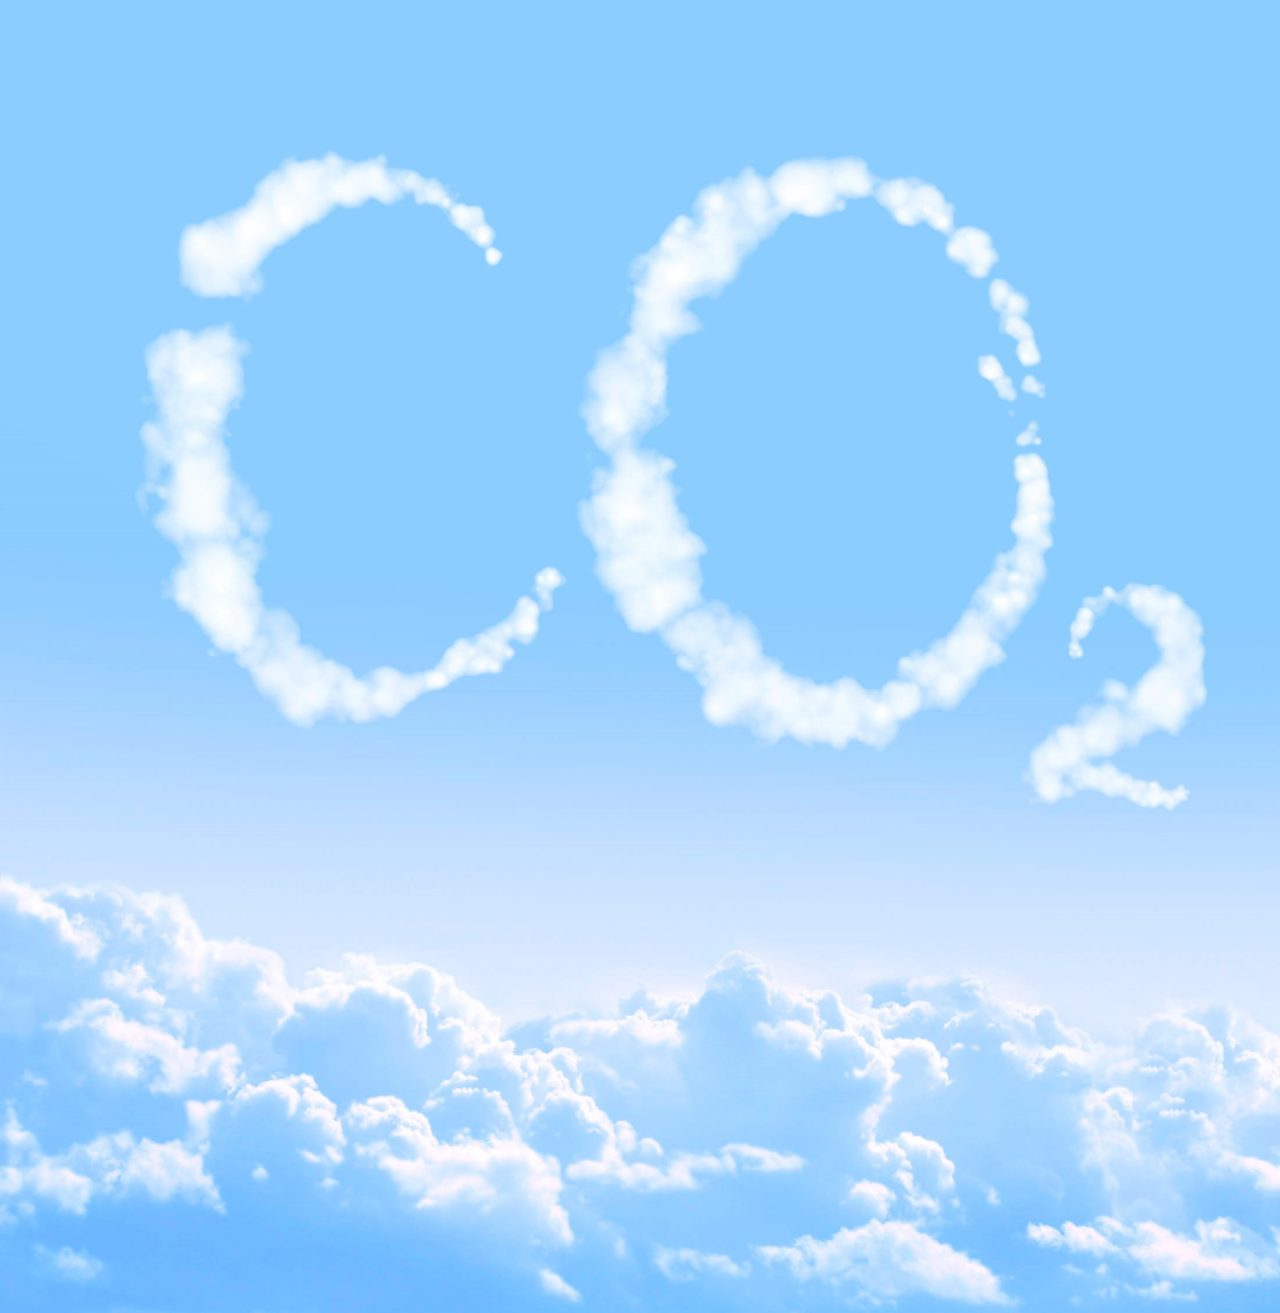 CO2-image-in-sky-1280x1313.jpg